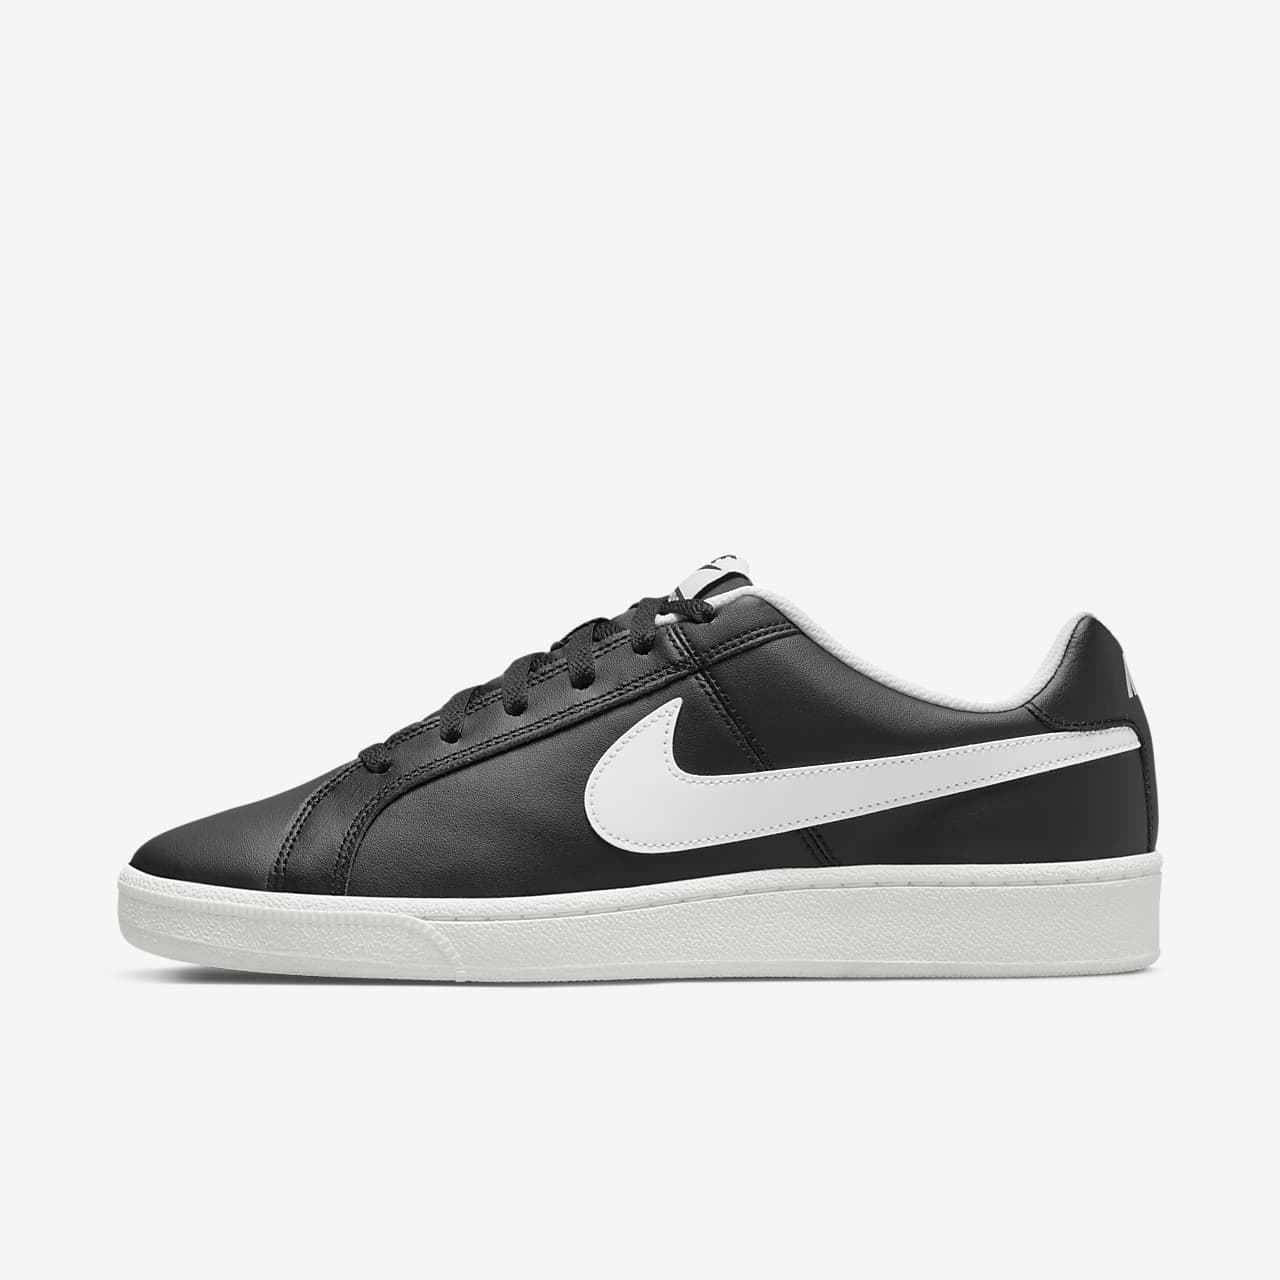 Nouvelle Courts Royale Skateboard Chaussures Us Taille 5 10